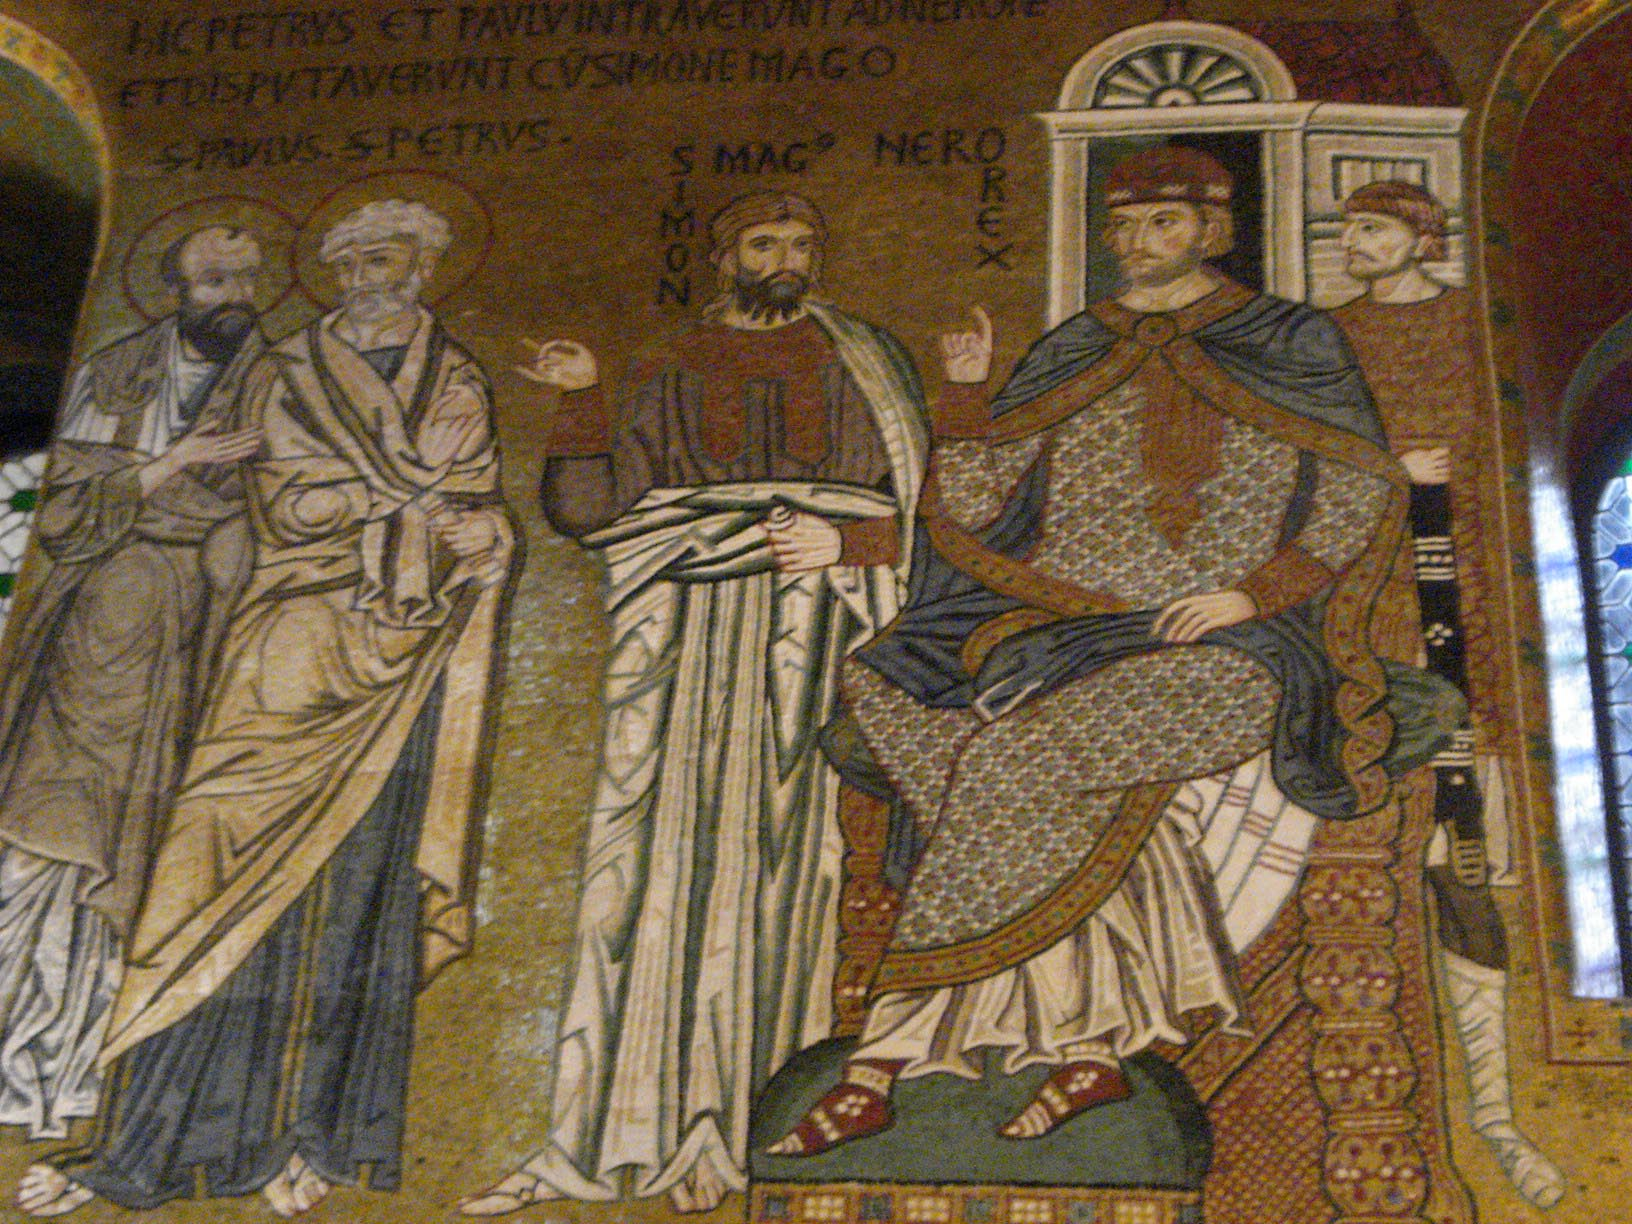 Mosaic showing Peter, Paul, Simon Magus and Nero